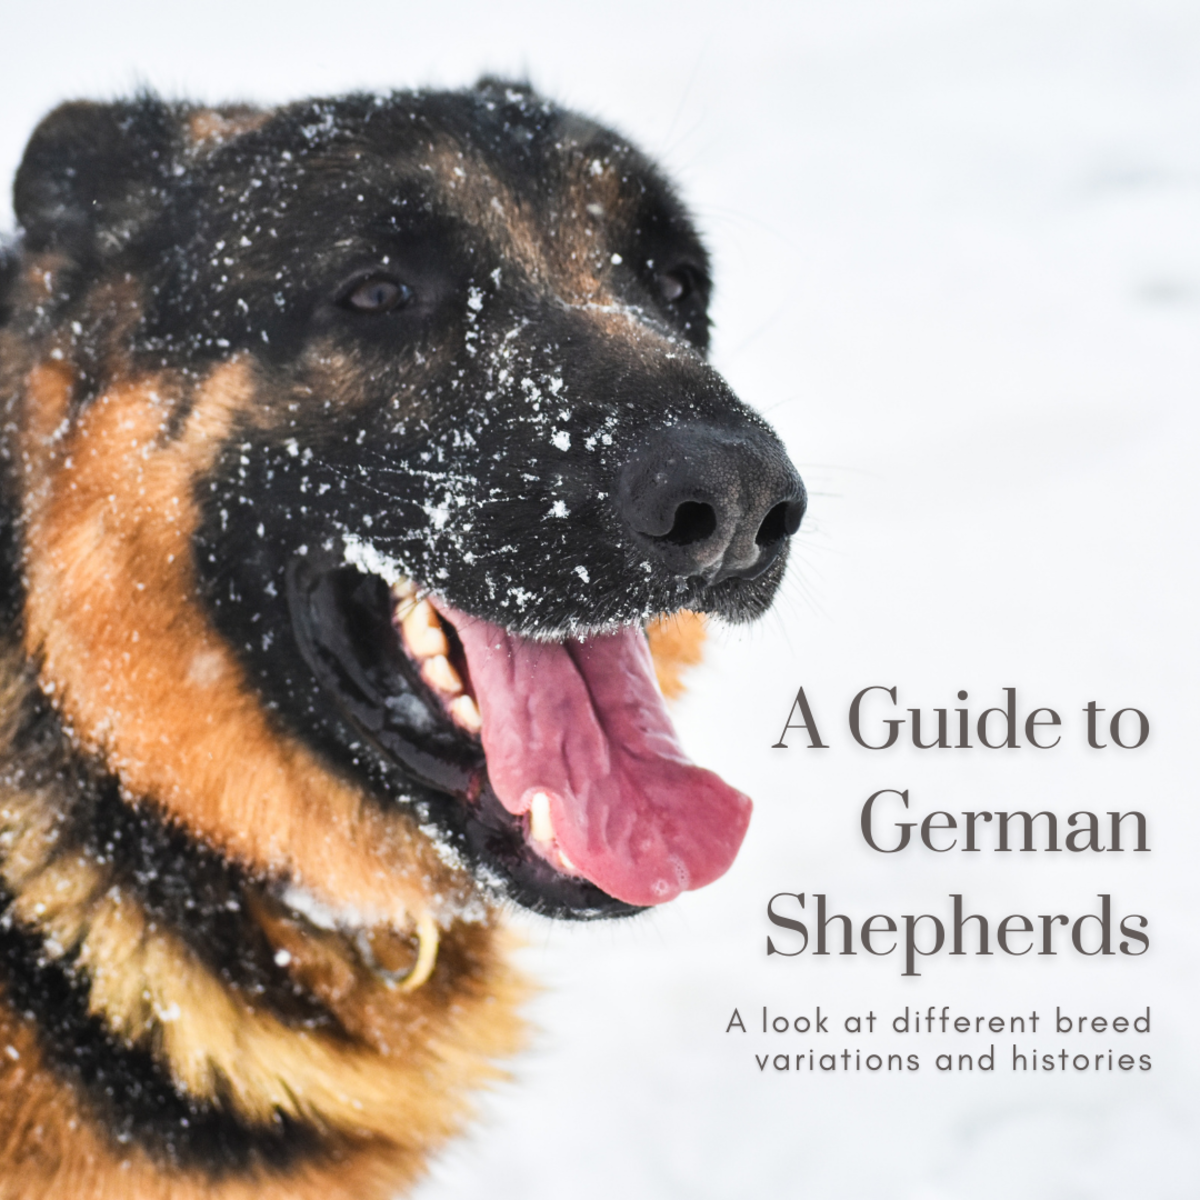 This article will take a look at the many different breed variations of German Shepherds, particularly along show and working lines.